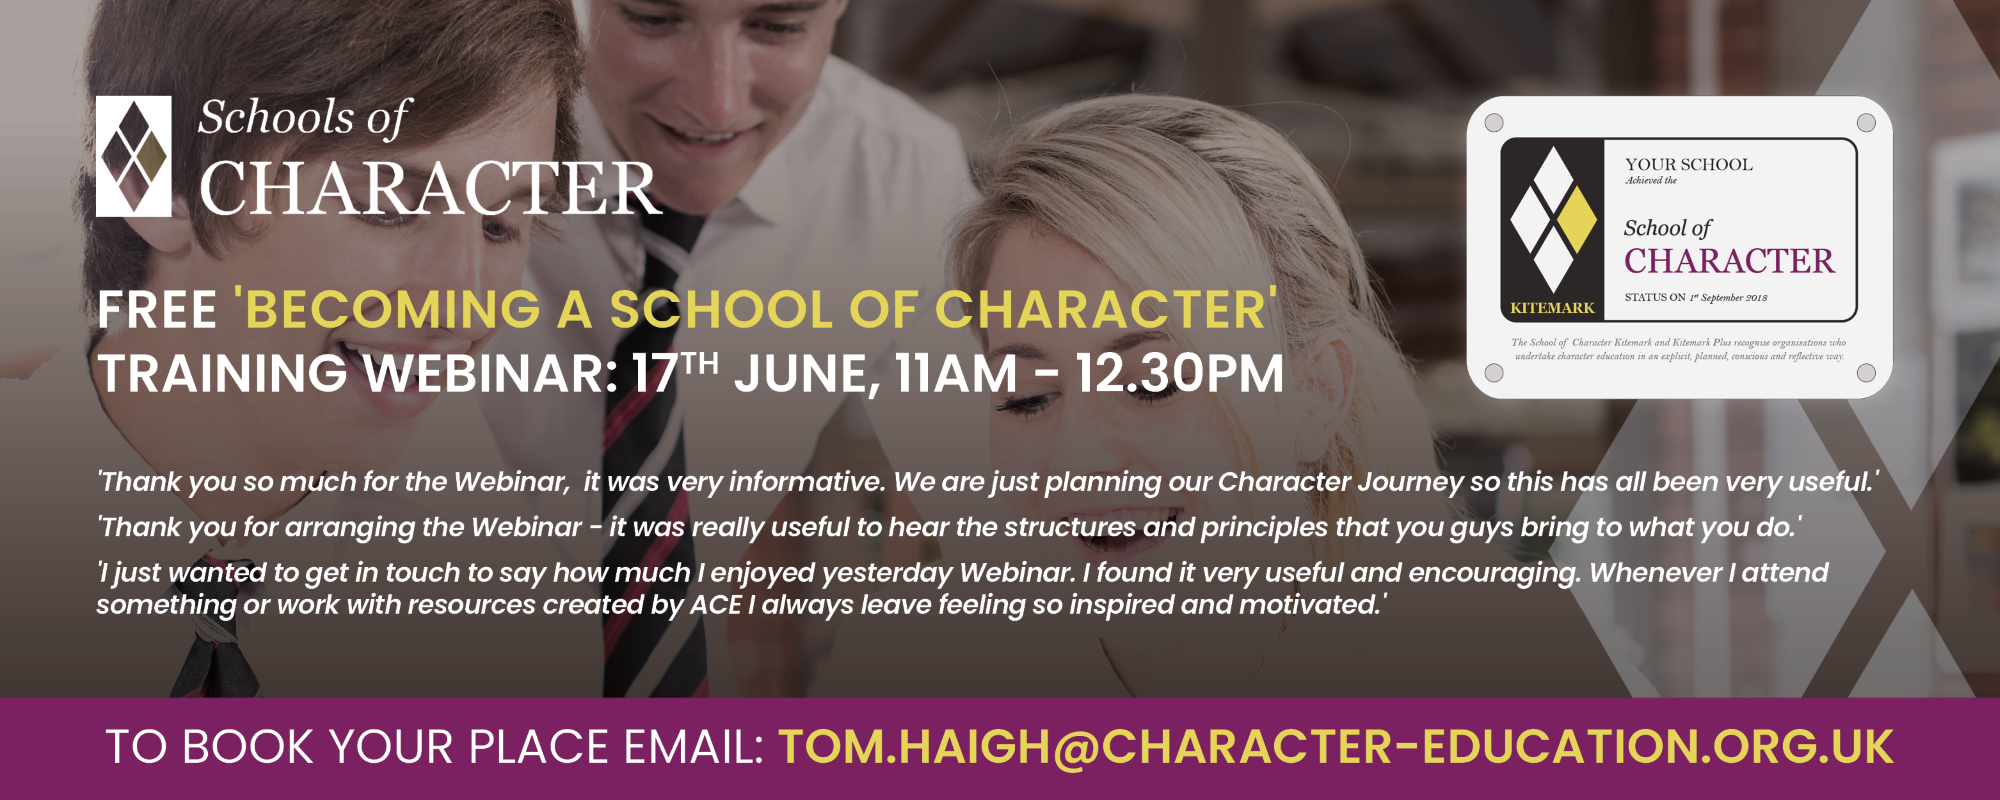 Free 'Becoming a School of Character' Training Webinar: 17th June, 11am - 12.30pm